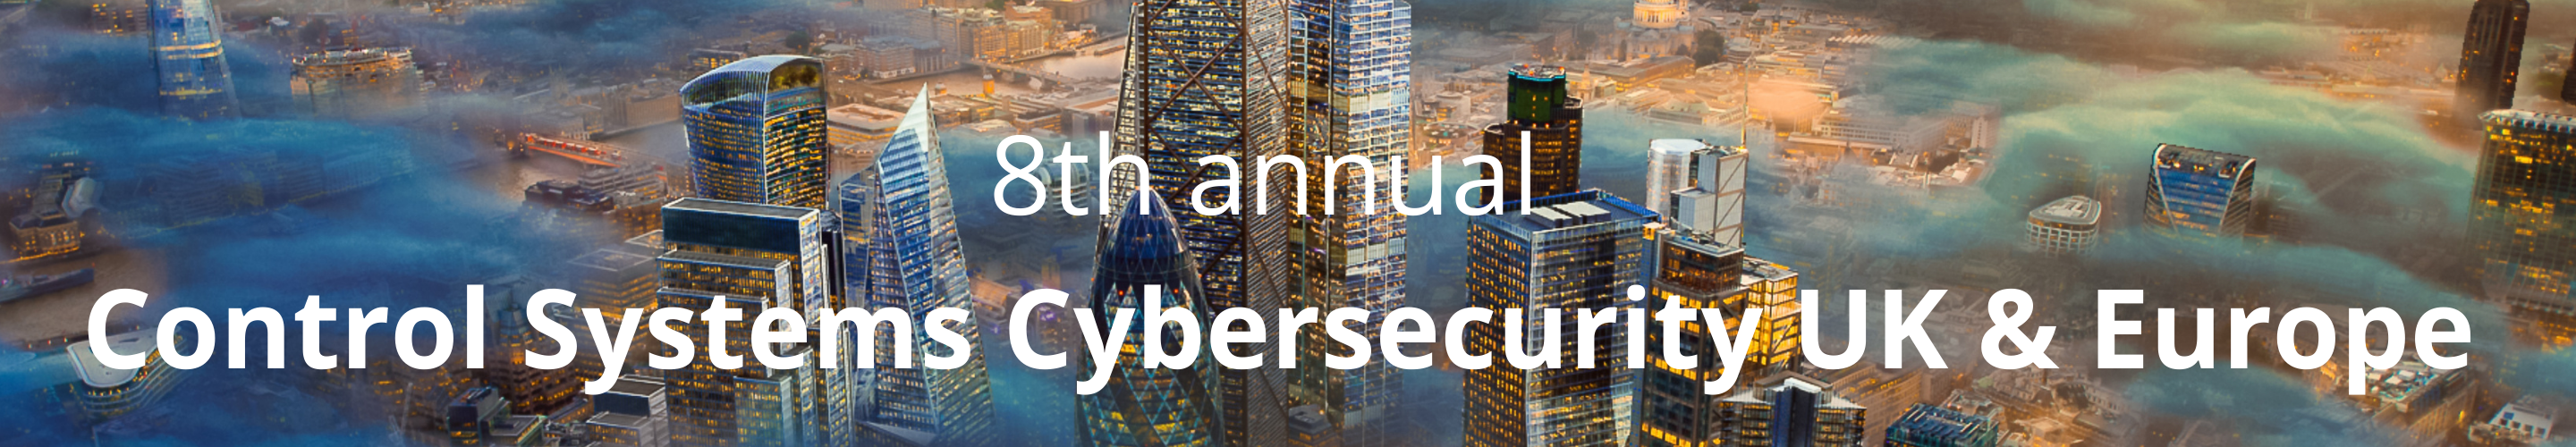 8th Annual Control Systems Cybersecurity Europe Cyber Senate